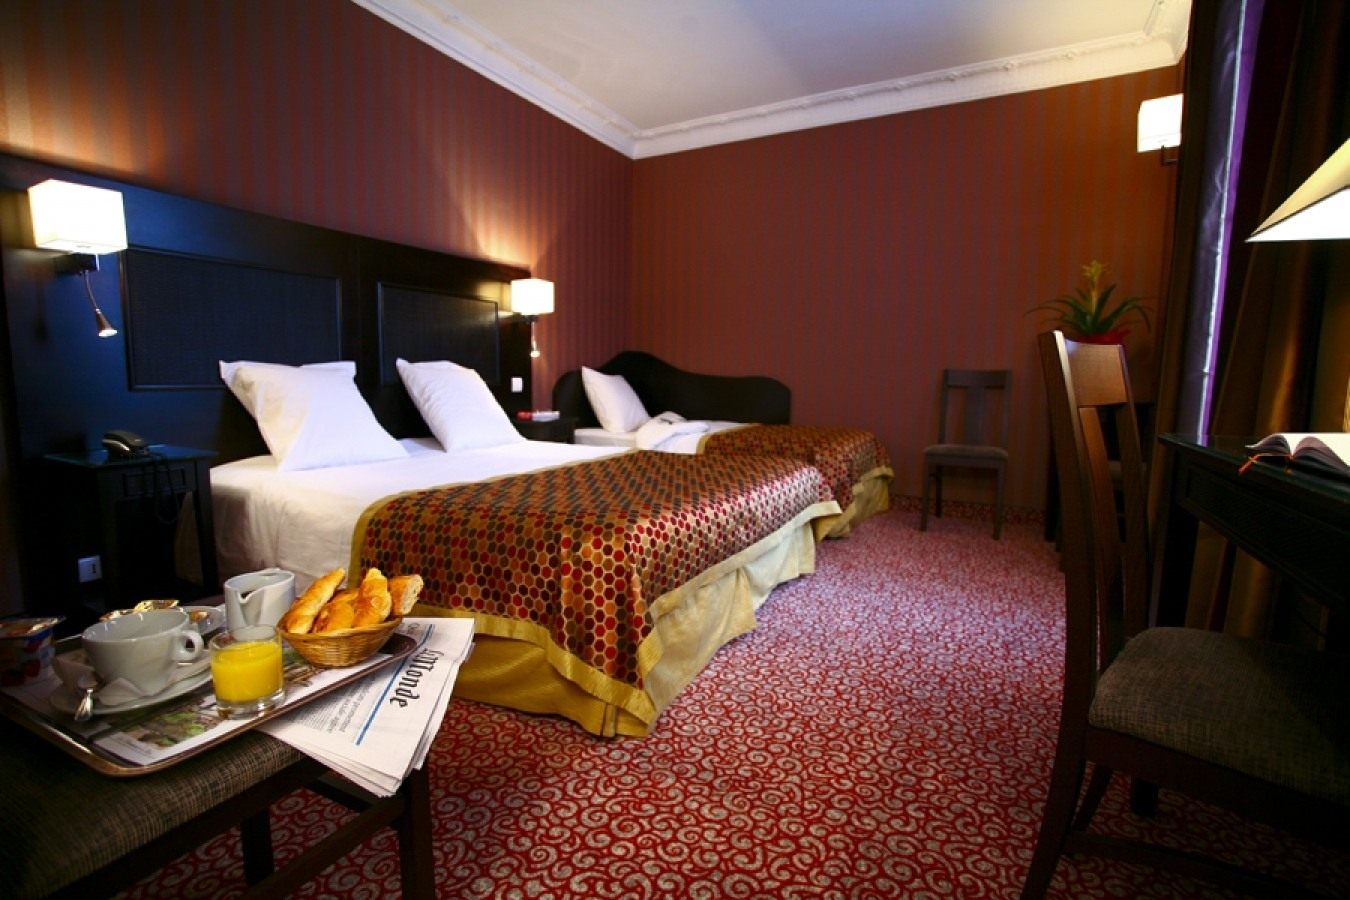 Hotel Convention Montparnasse - Rooms